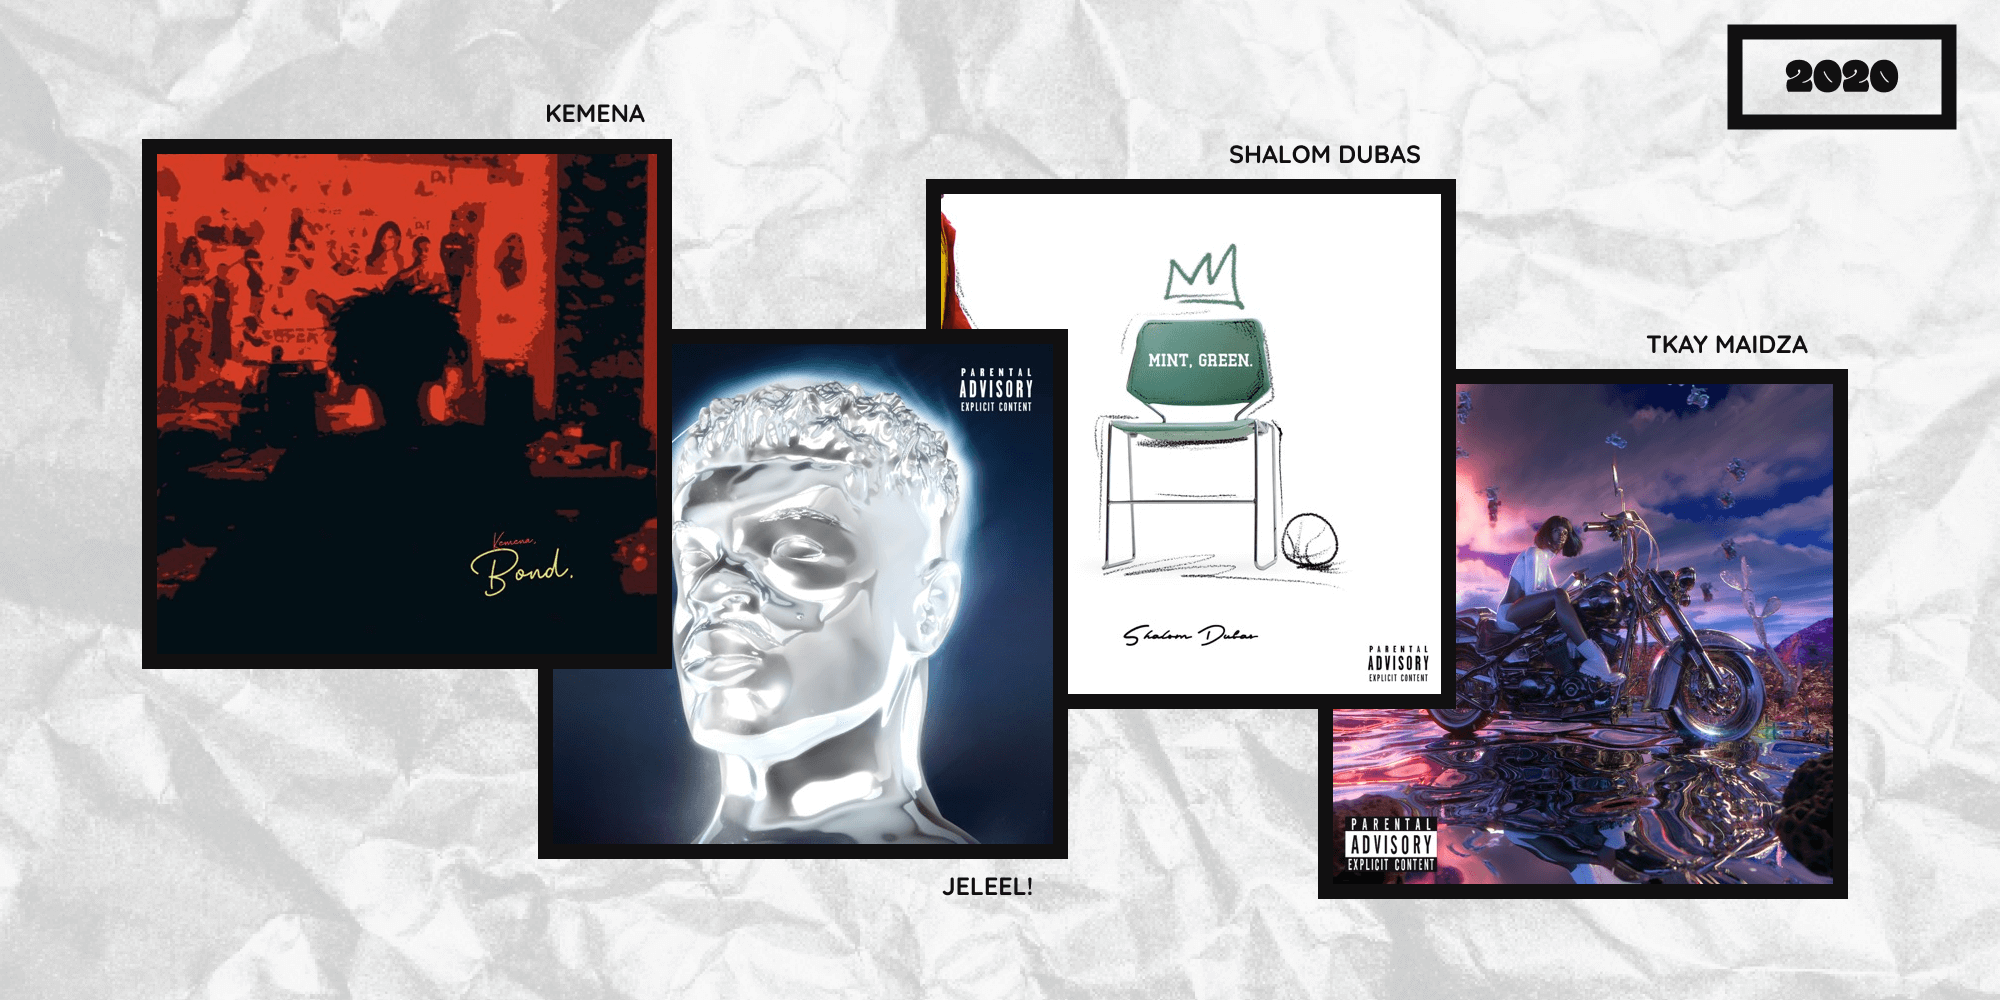 8 must-hear projects you may have missed this year